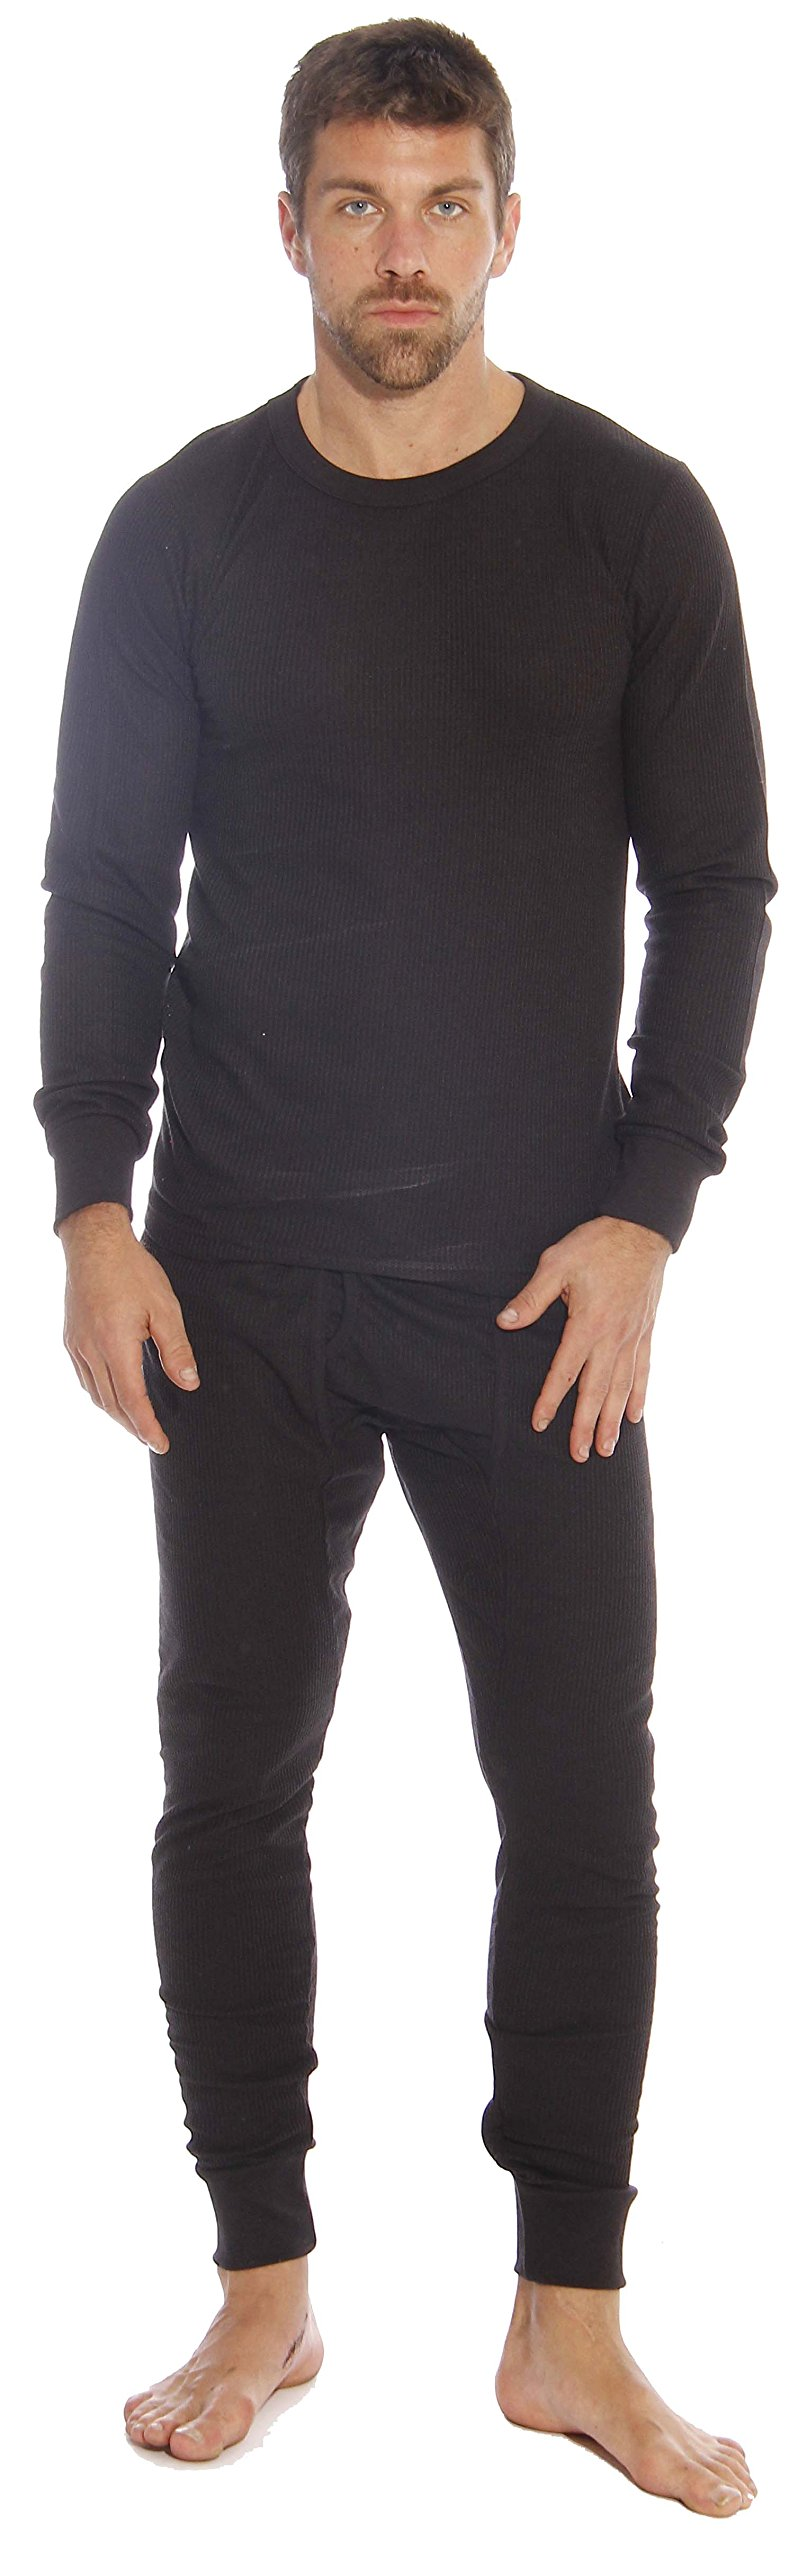 At The Buzzer Thermal Underwear Set for Men 95962-Black-L by At The Buzzer